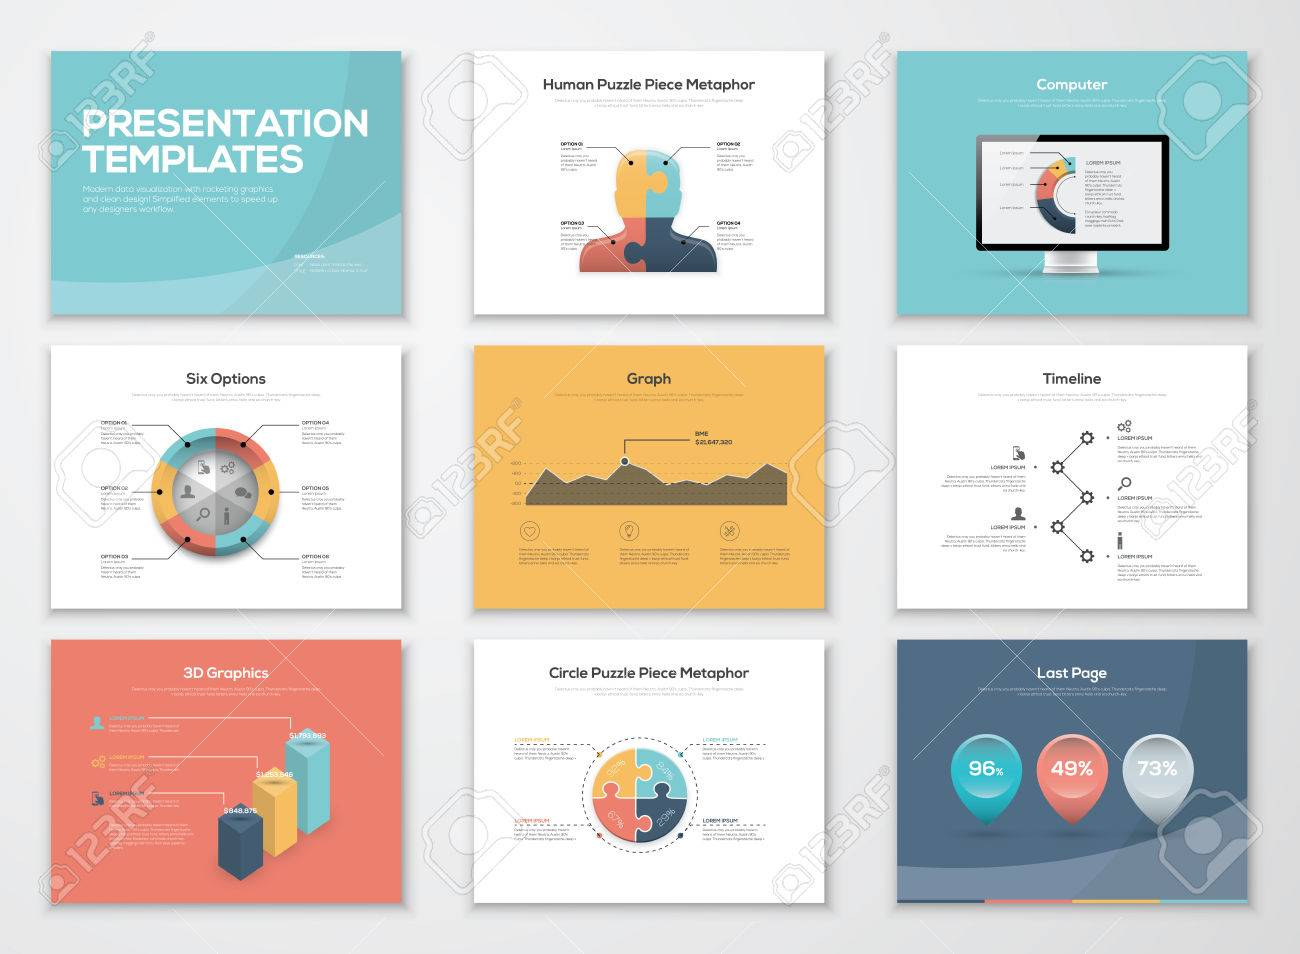 Business Presentation Templates And Infographics Vector Elements Stock  Vector   36235845